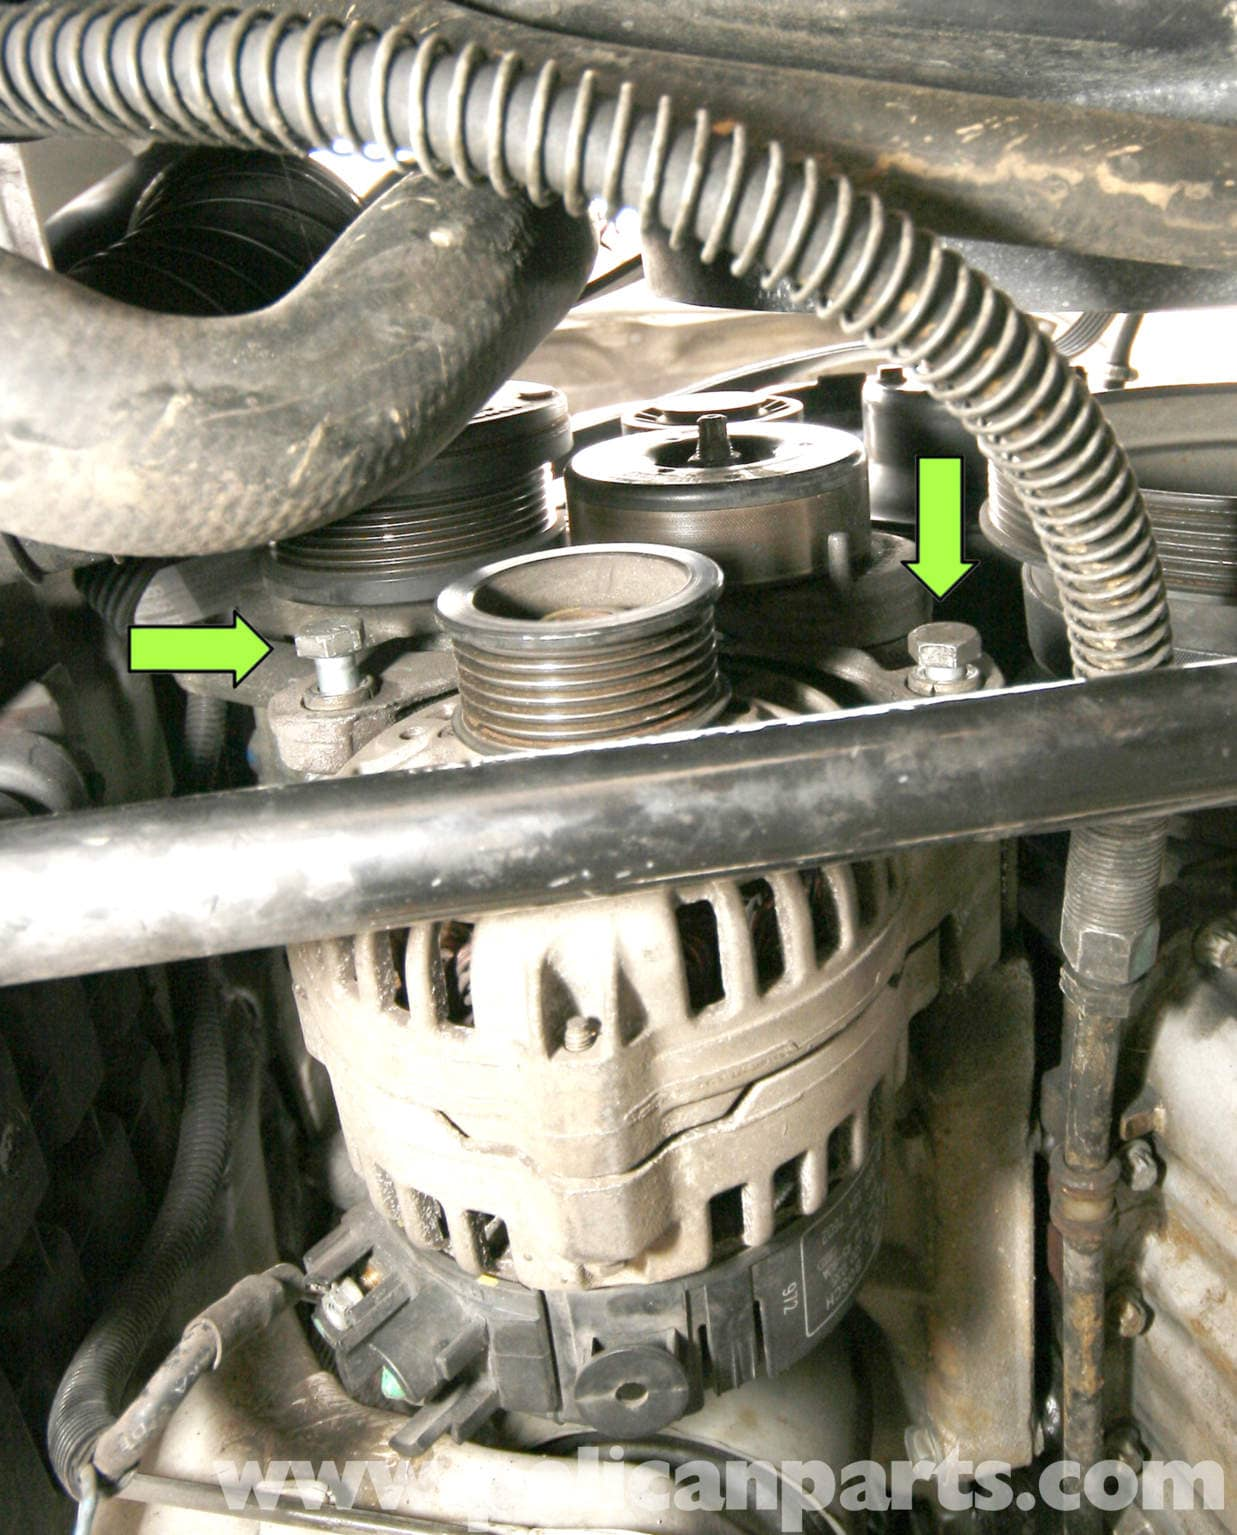 Suspension Coil Spring  pressor additionally Harley Sportster Wiring Diagram additionally Oil Catch Can Install likewise Coil Spring  pressor Tool furthermore Mercedes Vans Sprinter C ers With Bathrooms. on mercedes alternator pulley removal